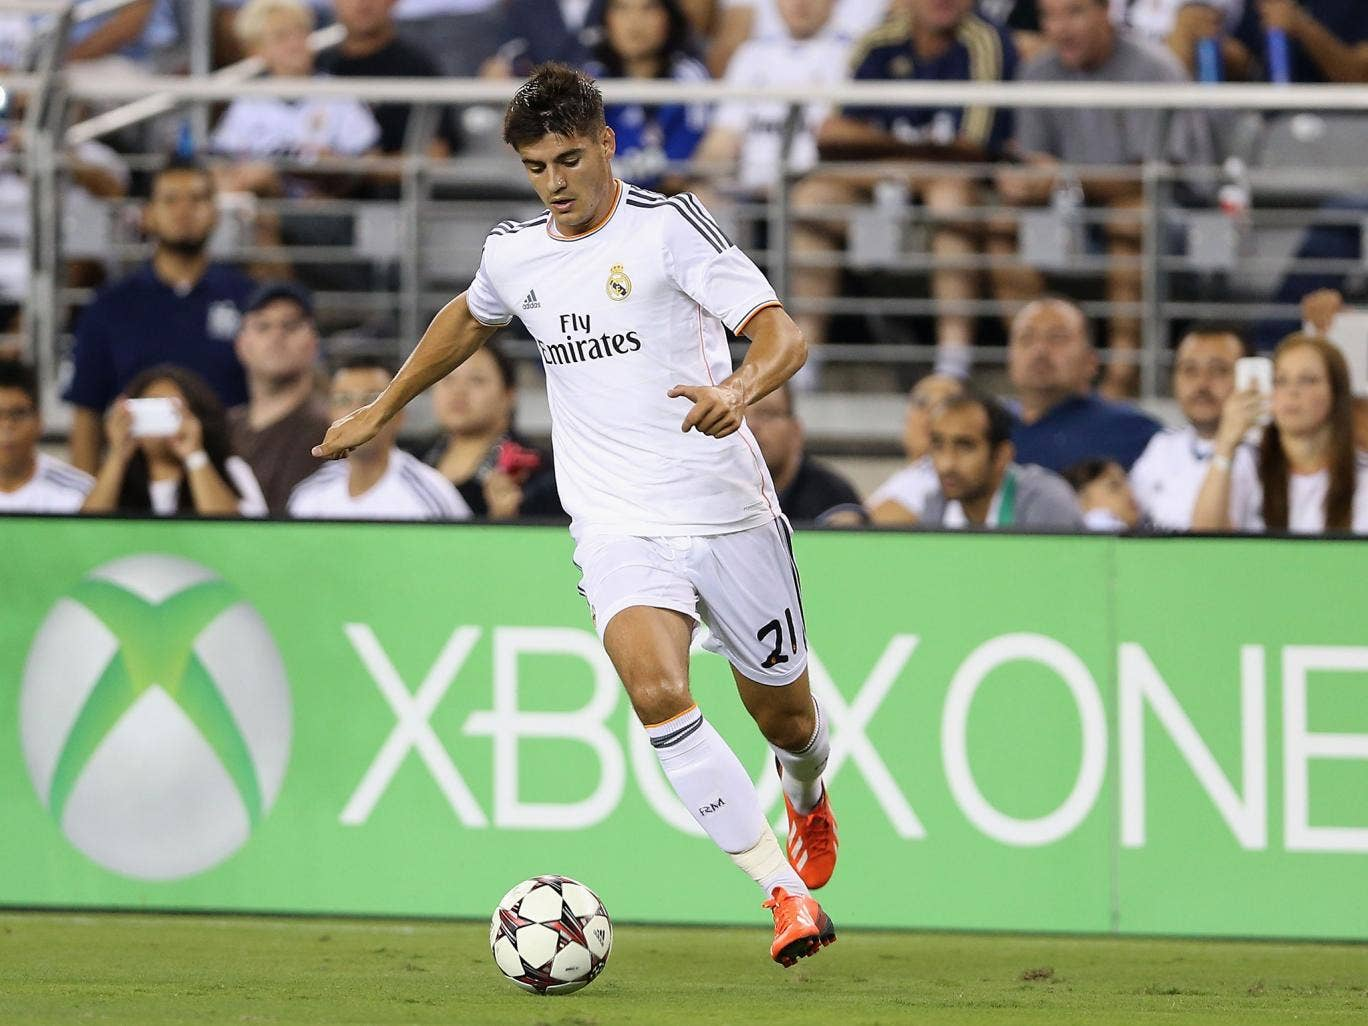 Real Madrid striker Alvaro Morata could be on his way to Arsenal after reports suggested the clubs have agreed a six-month loan deal